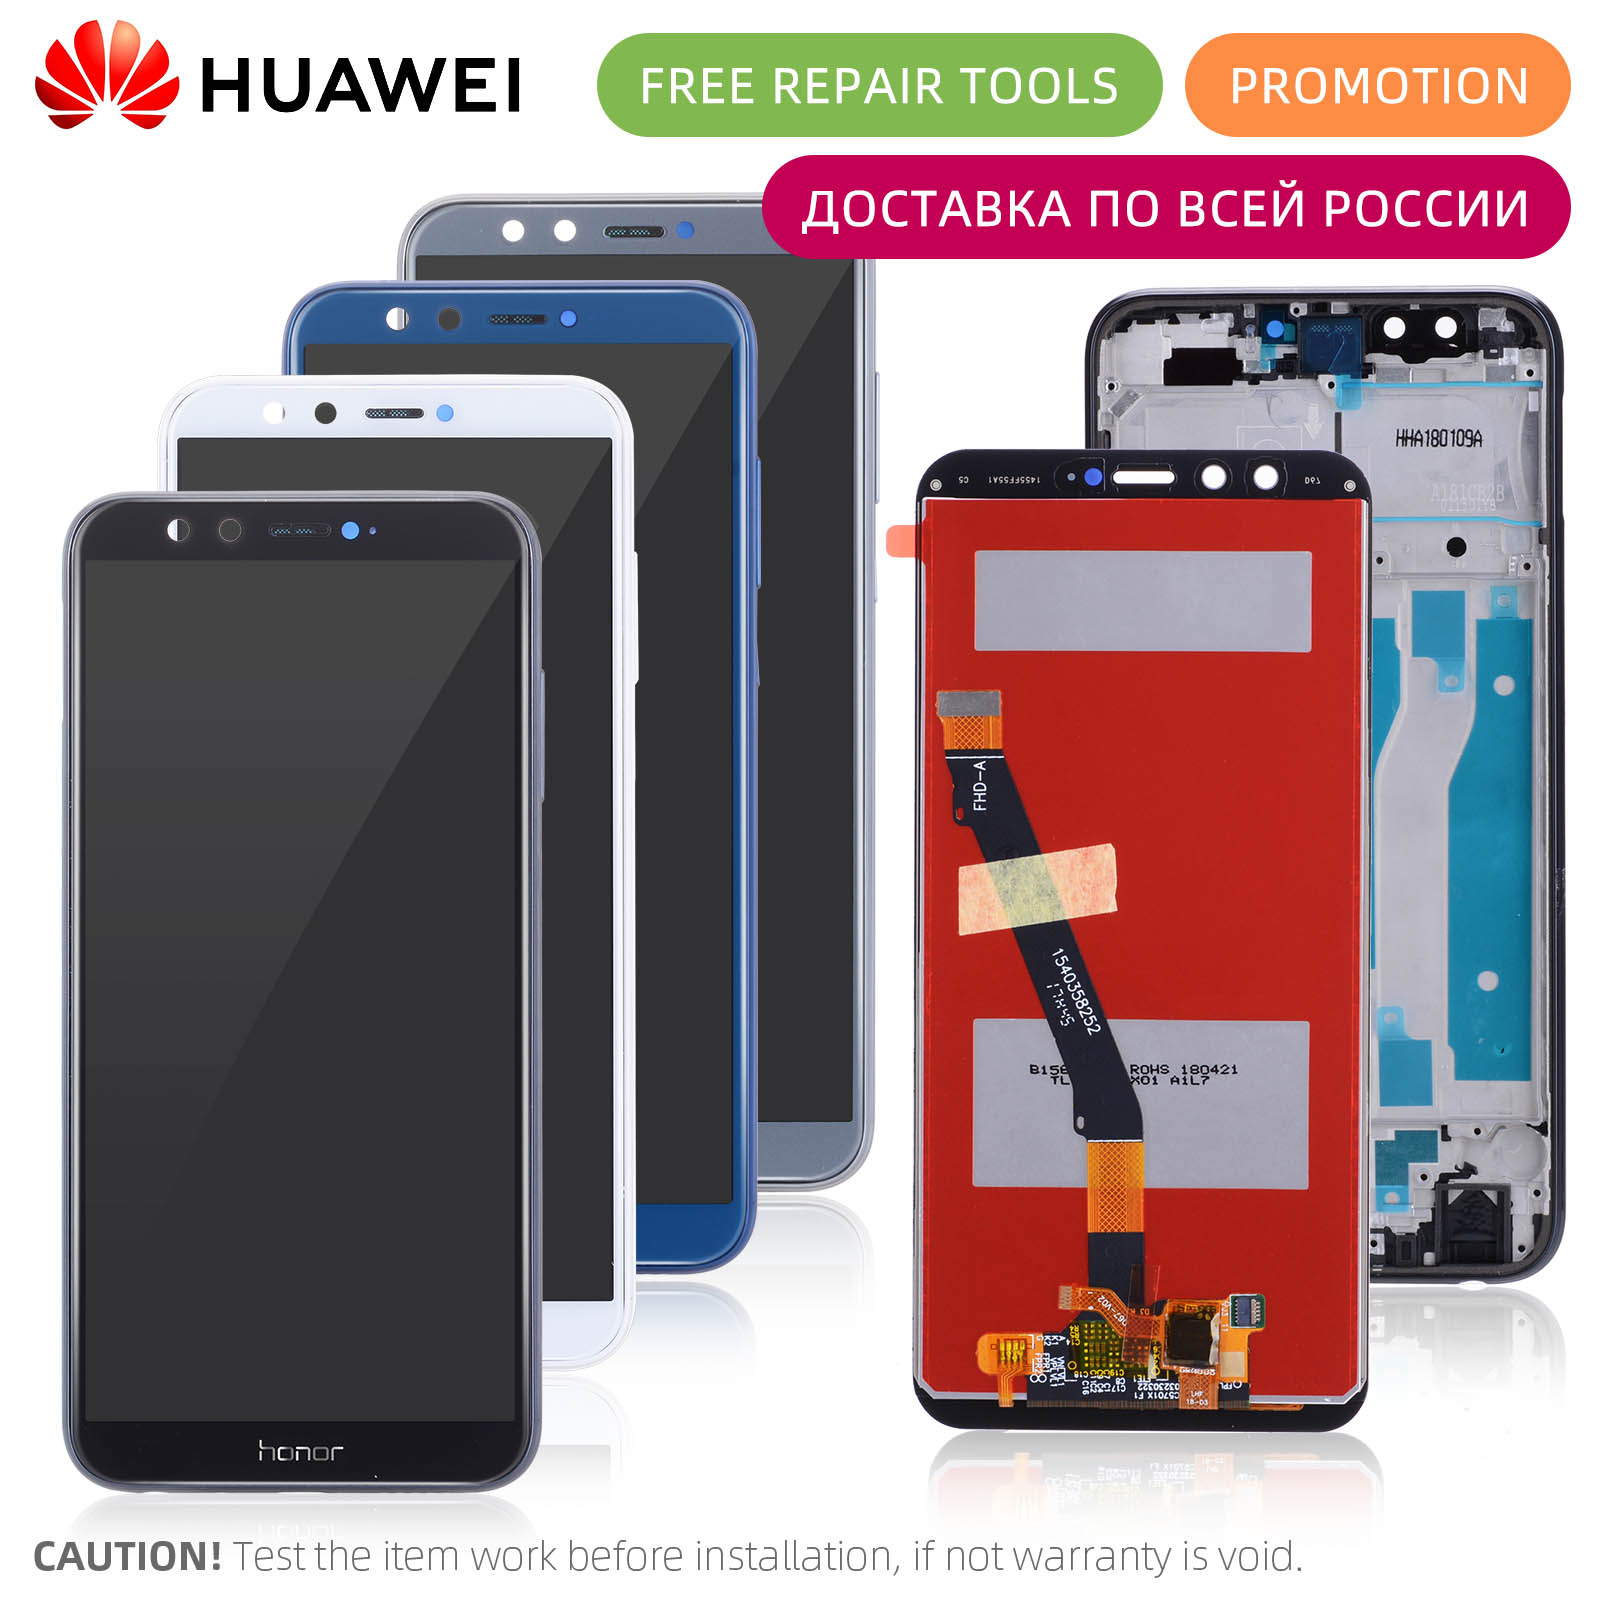 HOT SALE] Original Glass Battery Cover for HUAWEI Honor 9 Lite,Back